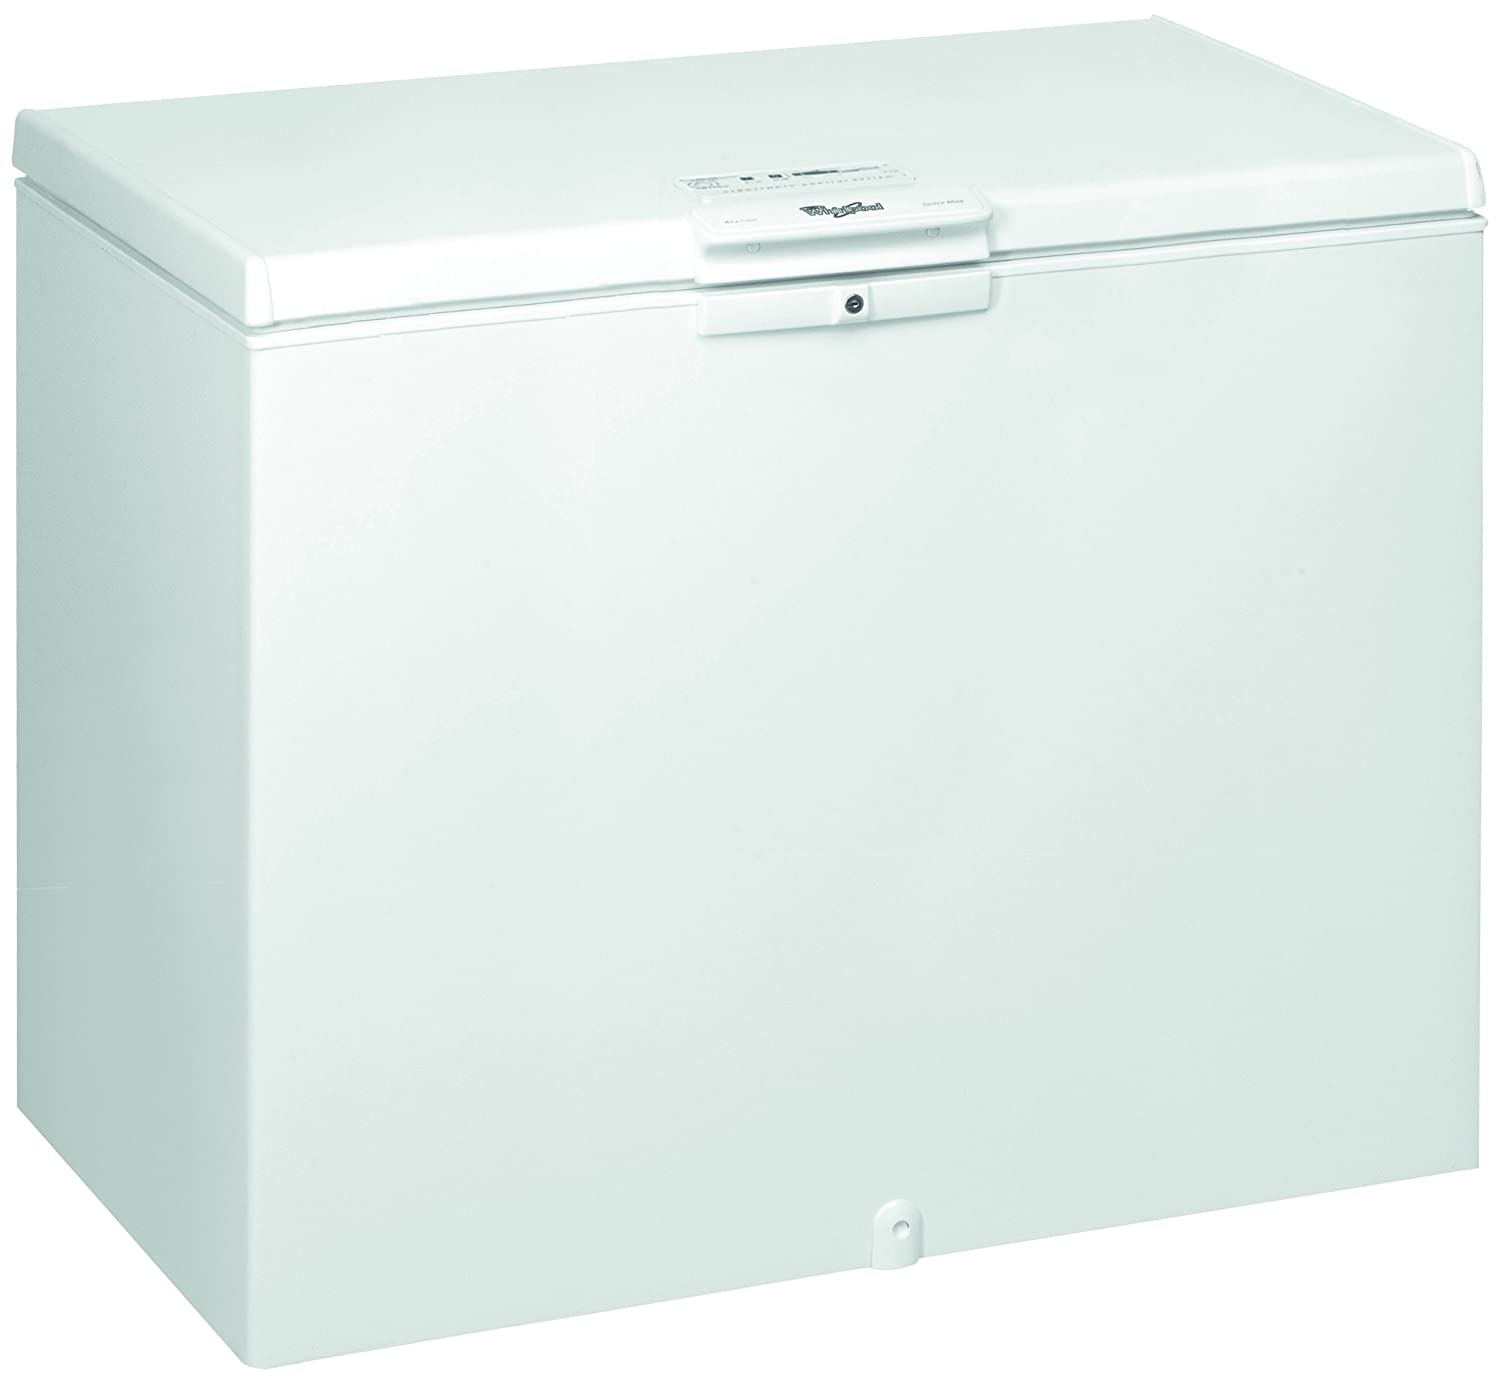 Whirlpool WHE28333 Independiente Baúl 274L A+++ Blanco ...